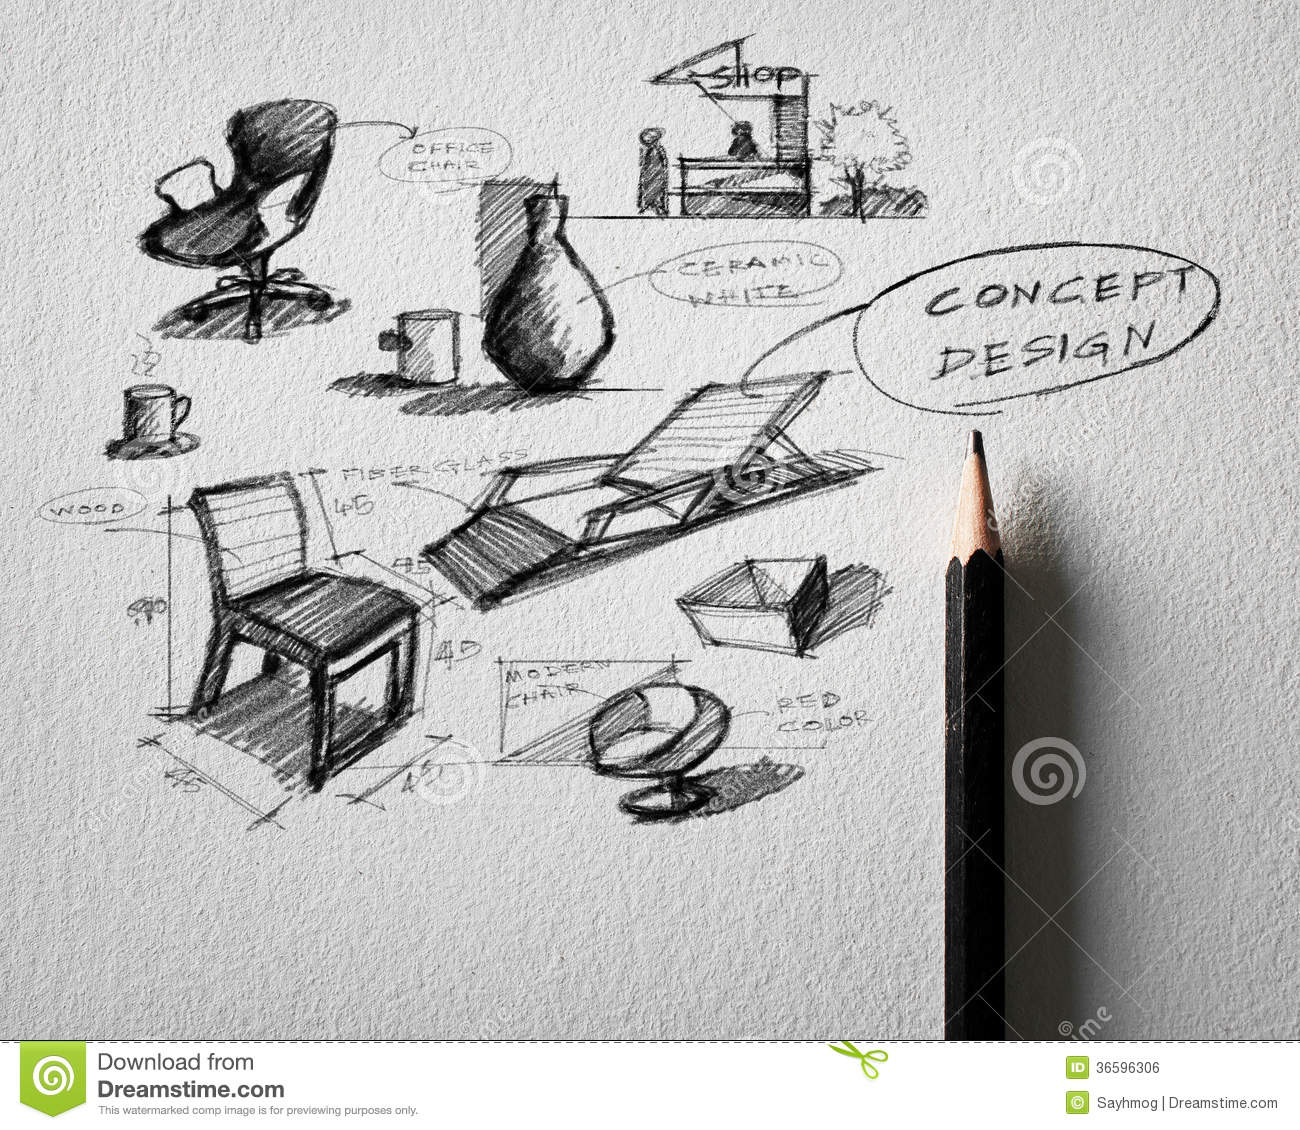 Furniture concept design sketching on white paper